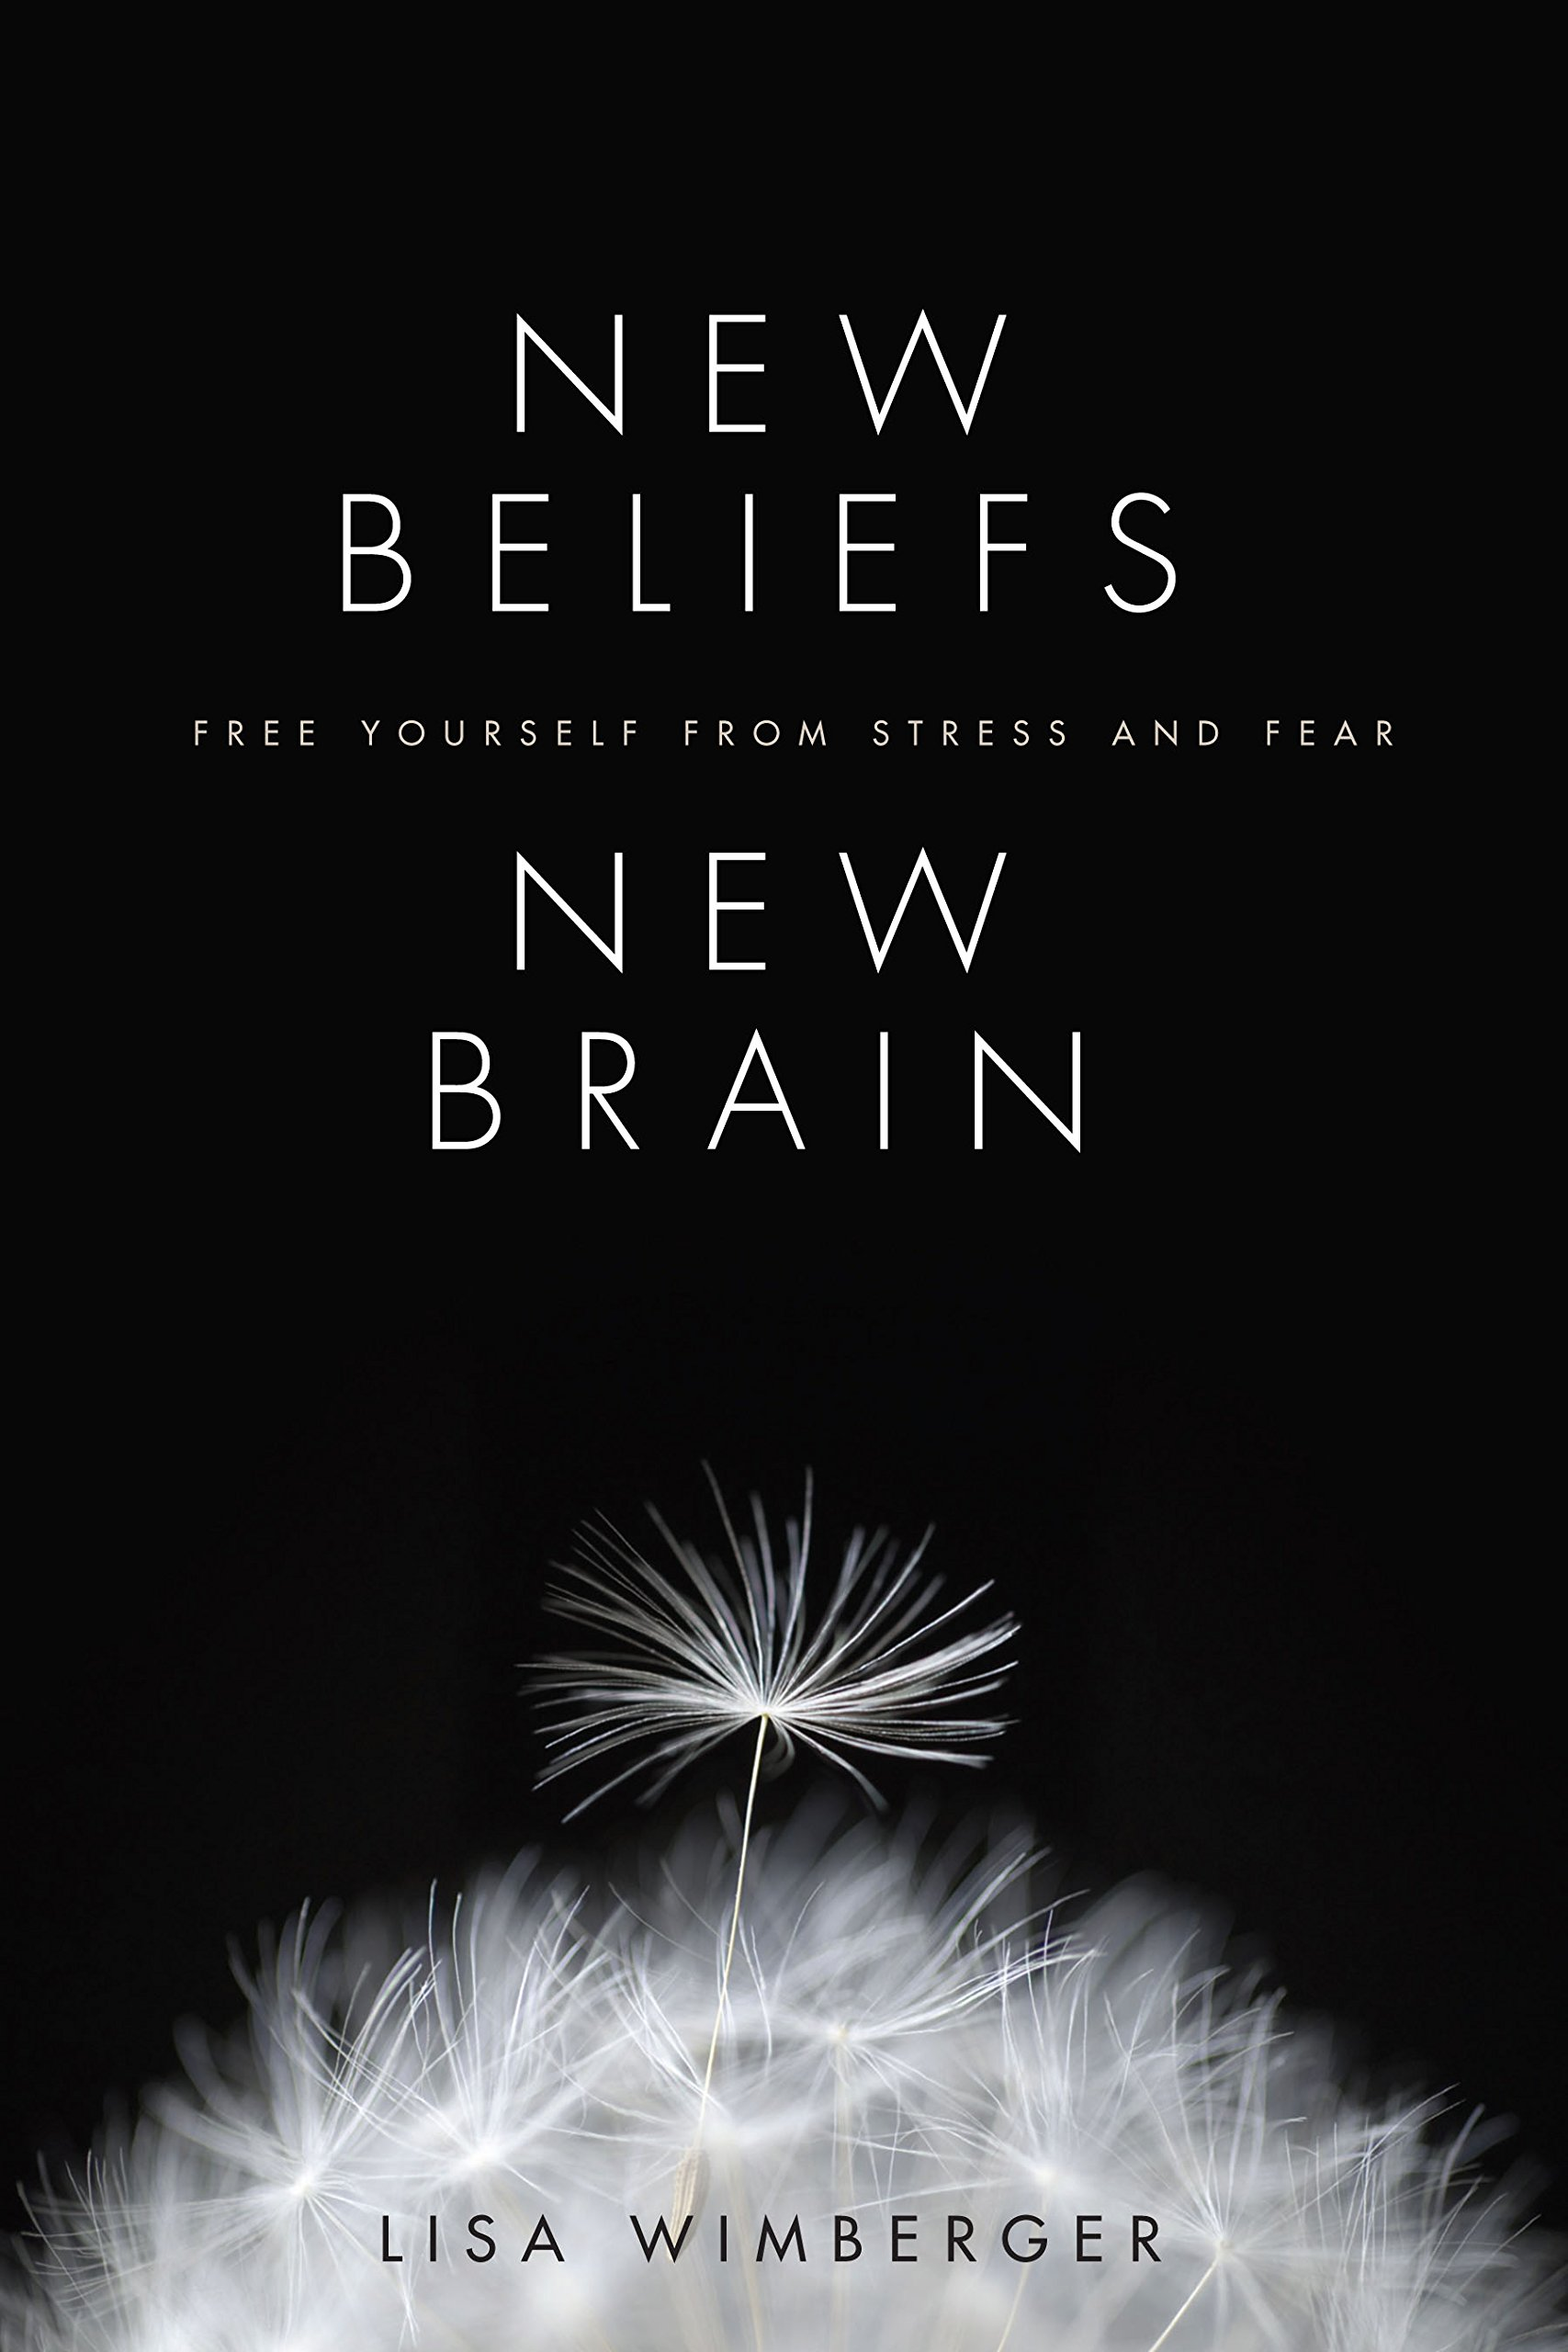 Download New Beliefs, New Brain: Free Yourself from Stress and Fear pdf